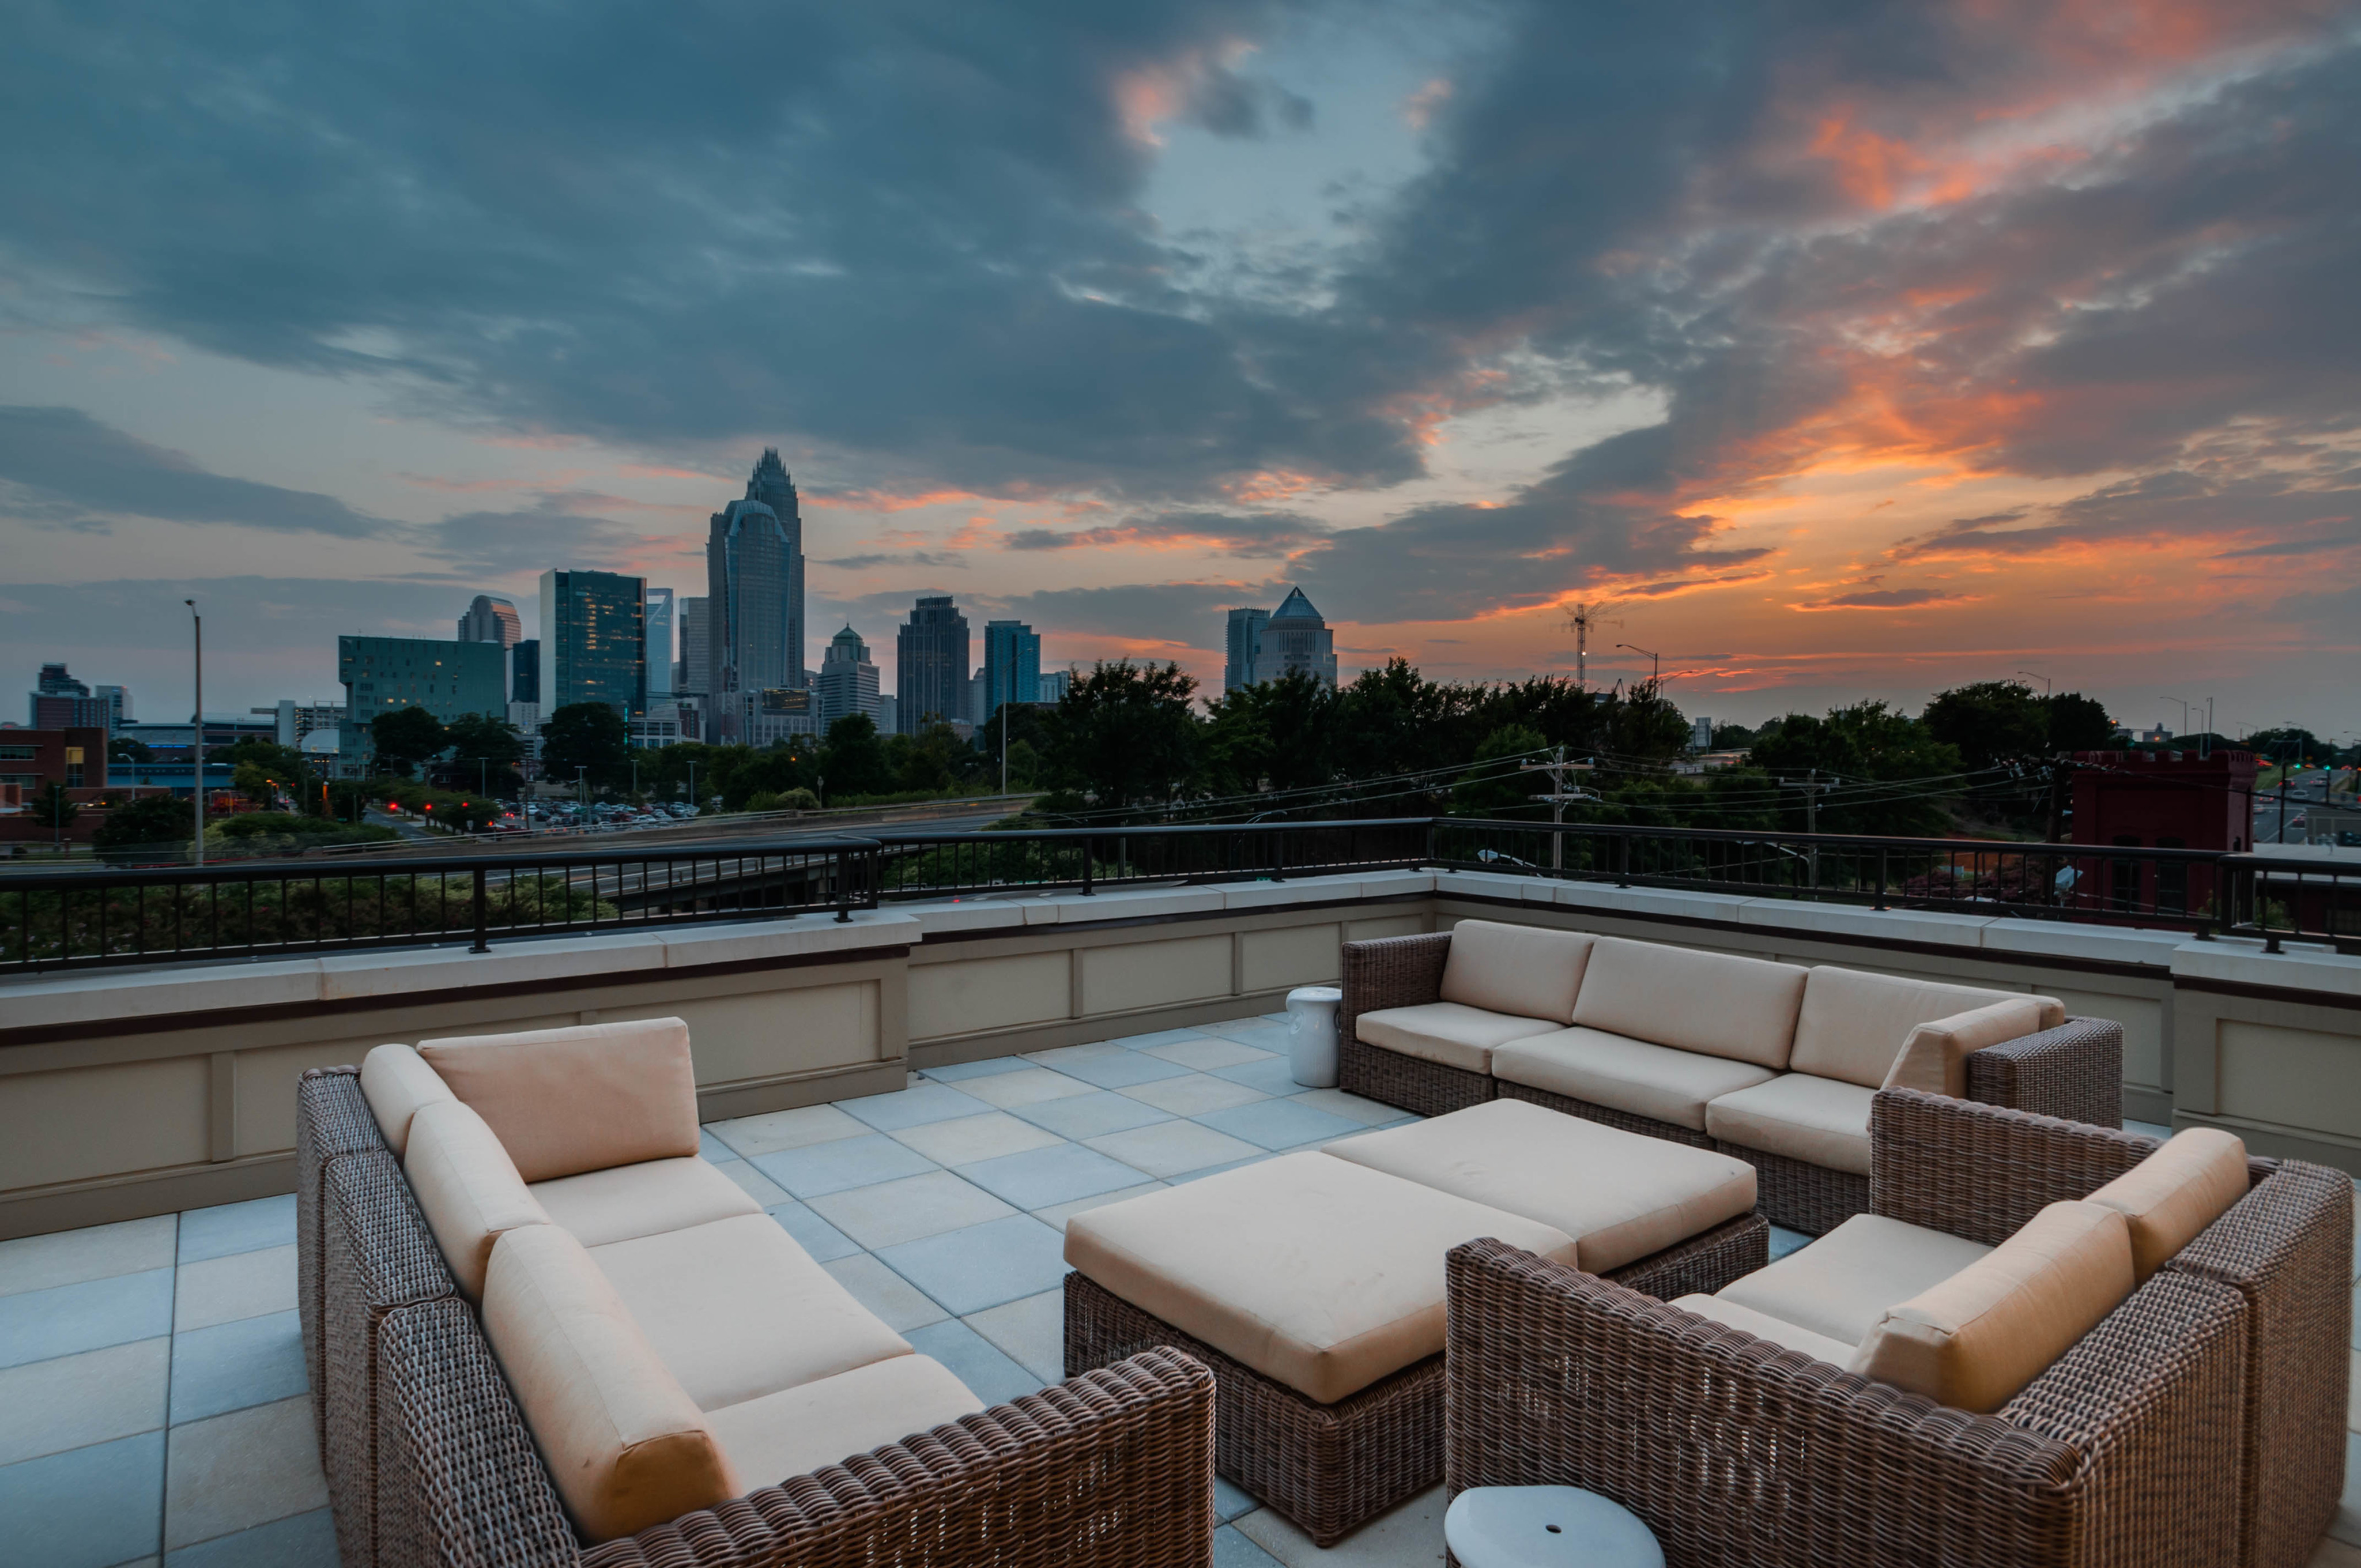 View of Rooftop Lounge, Showing Outdoor Couches, Sky at Sunset, and Views of Uptown Charlotte at Alpha Mill Apartments